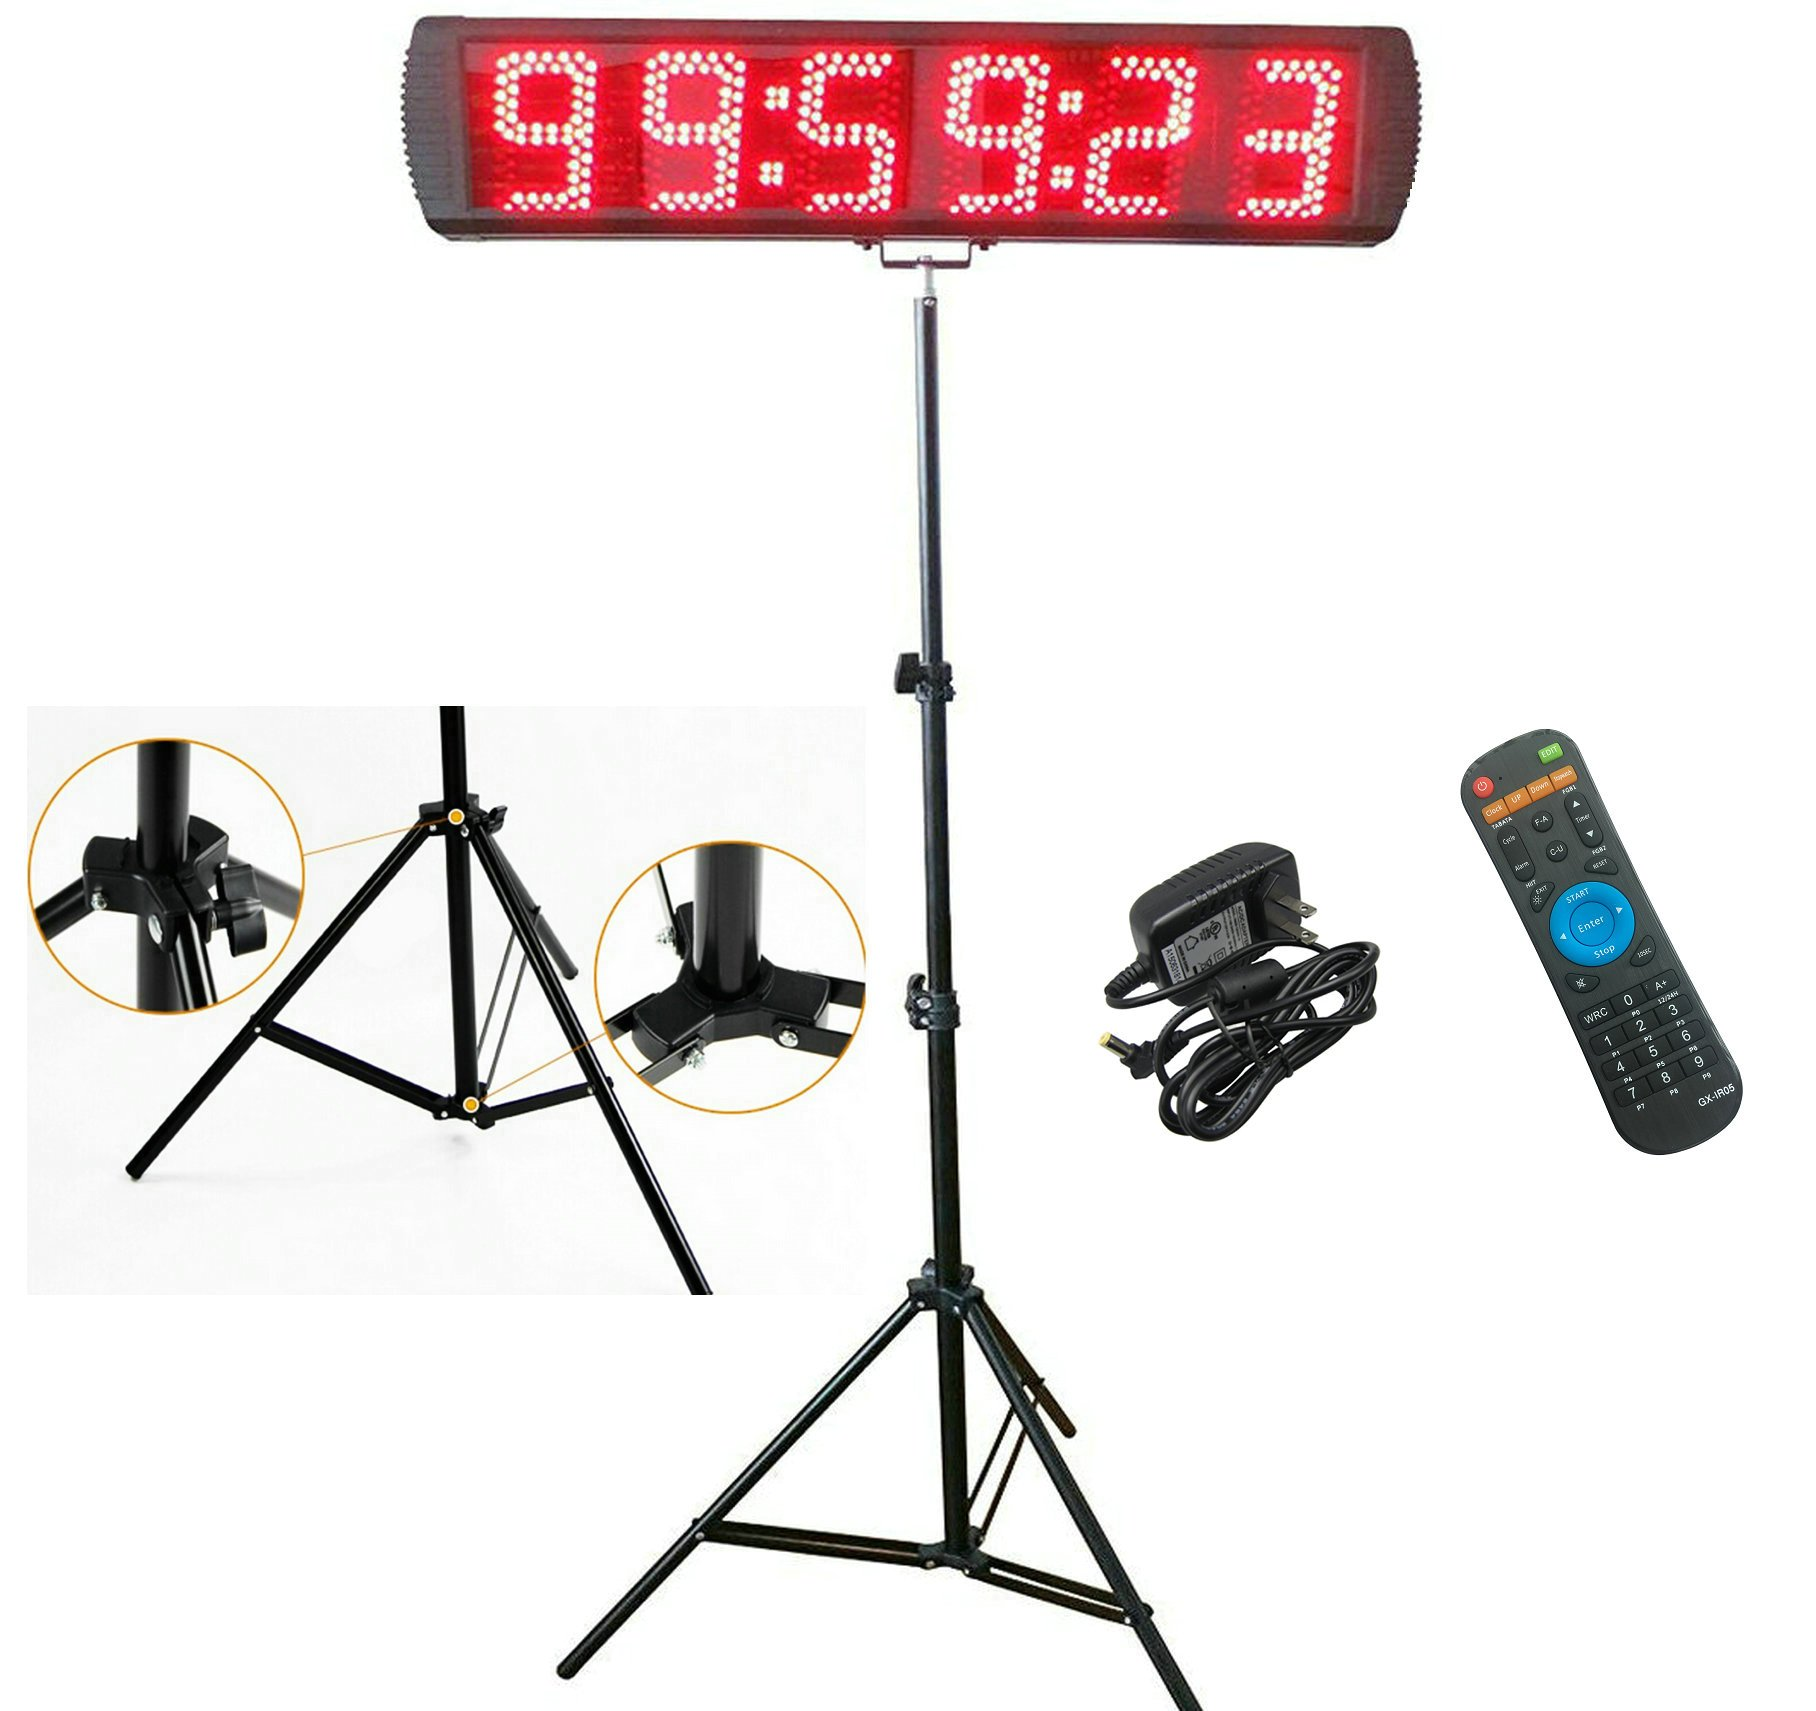 GANXIN Portable 5'' High 6 Digits LED Race Clock with Tripod for Running Events, Countdown/up Digital Race Timer, 12/24-Hour Real Time Clock, Stopwatch by Remote Control, Red Color